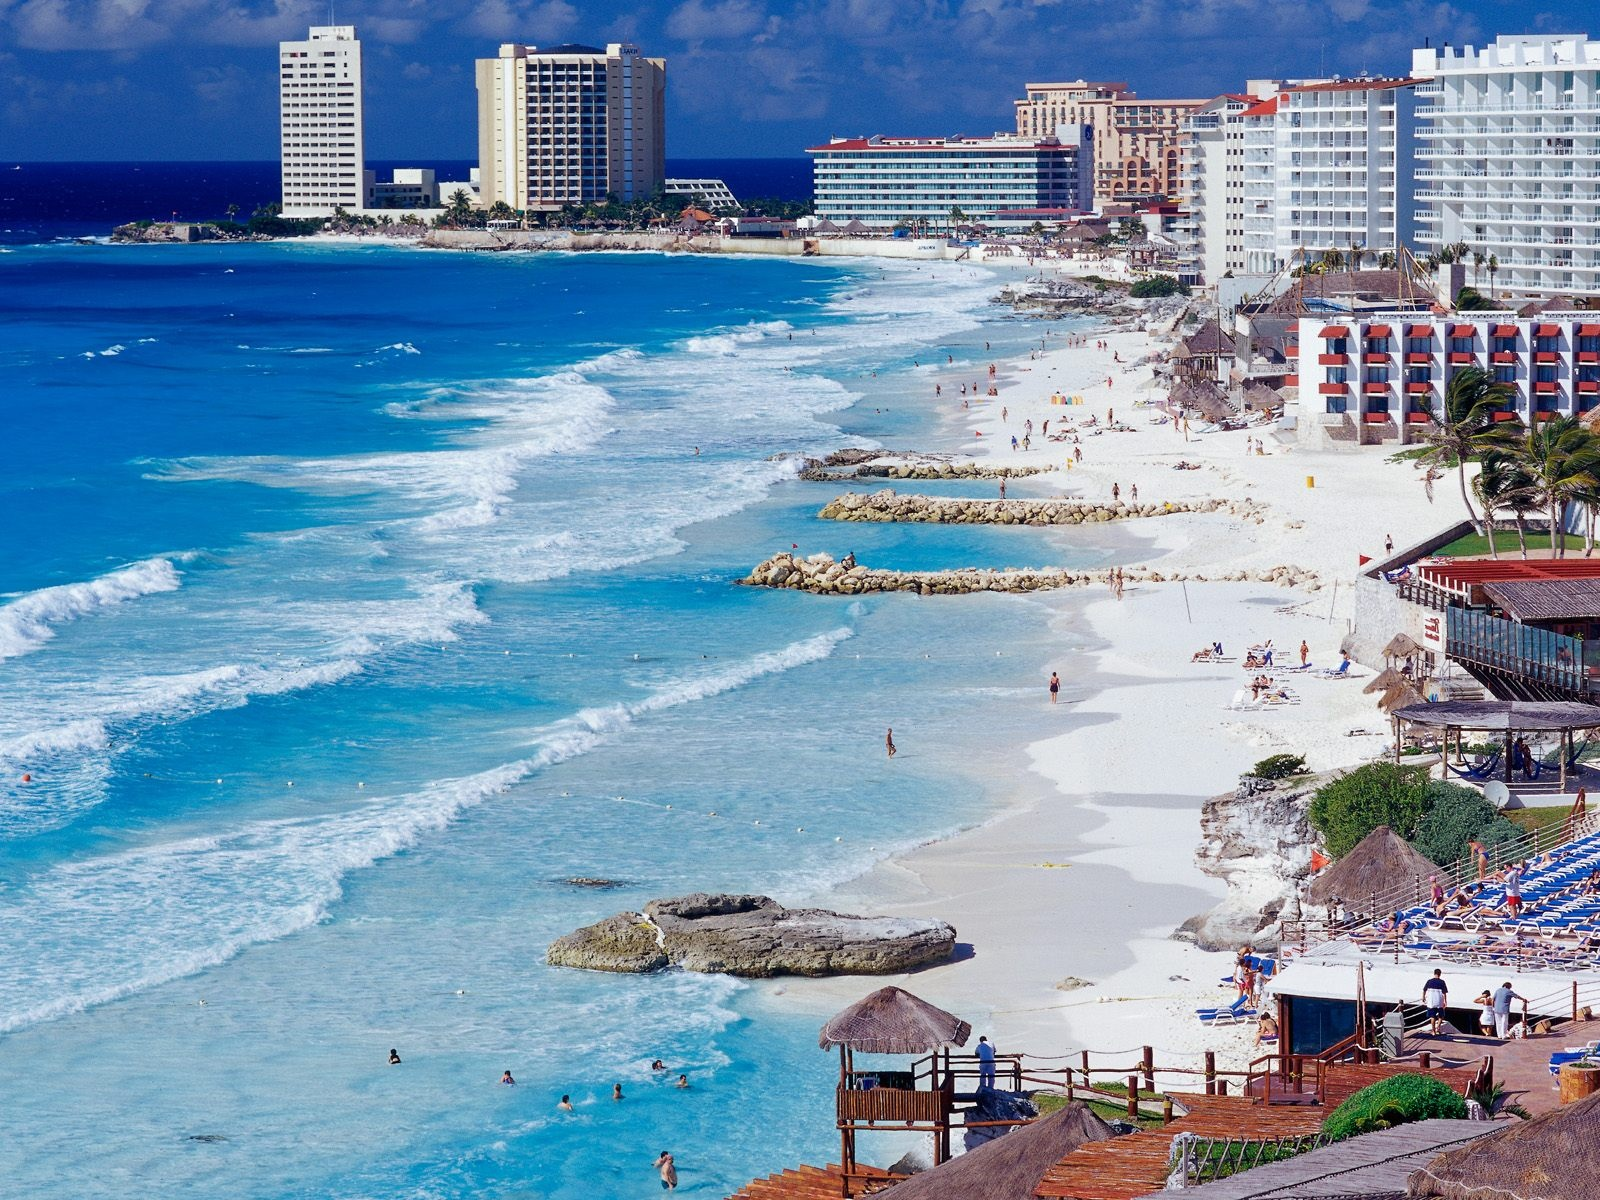 cancun-shoreline-mexico-is-a-HD-posted-in-Travel-World-category-wallpaper-wpc9003326